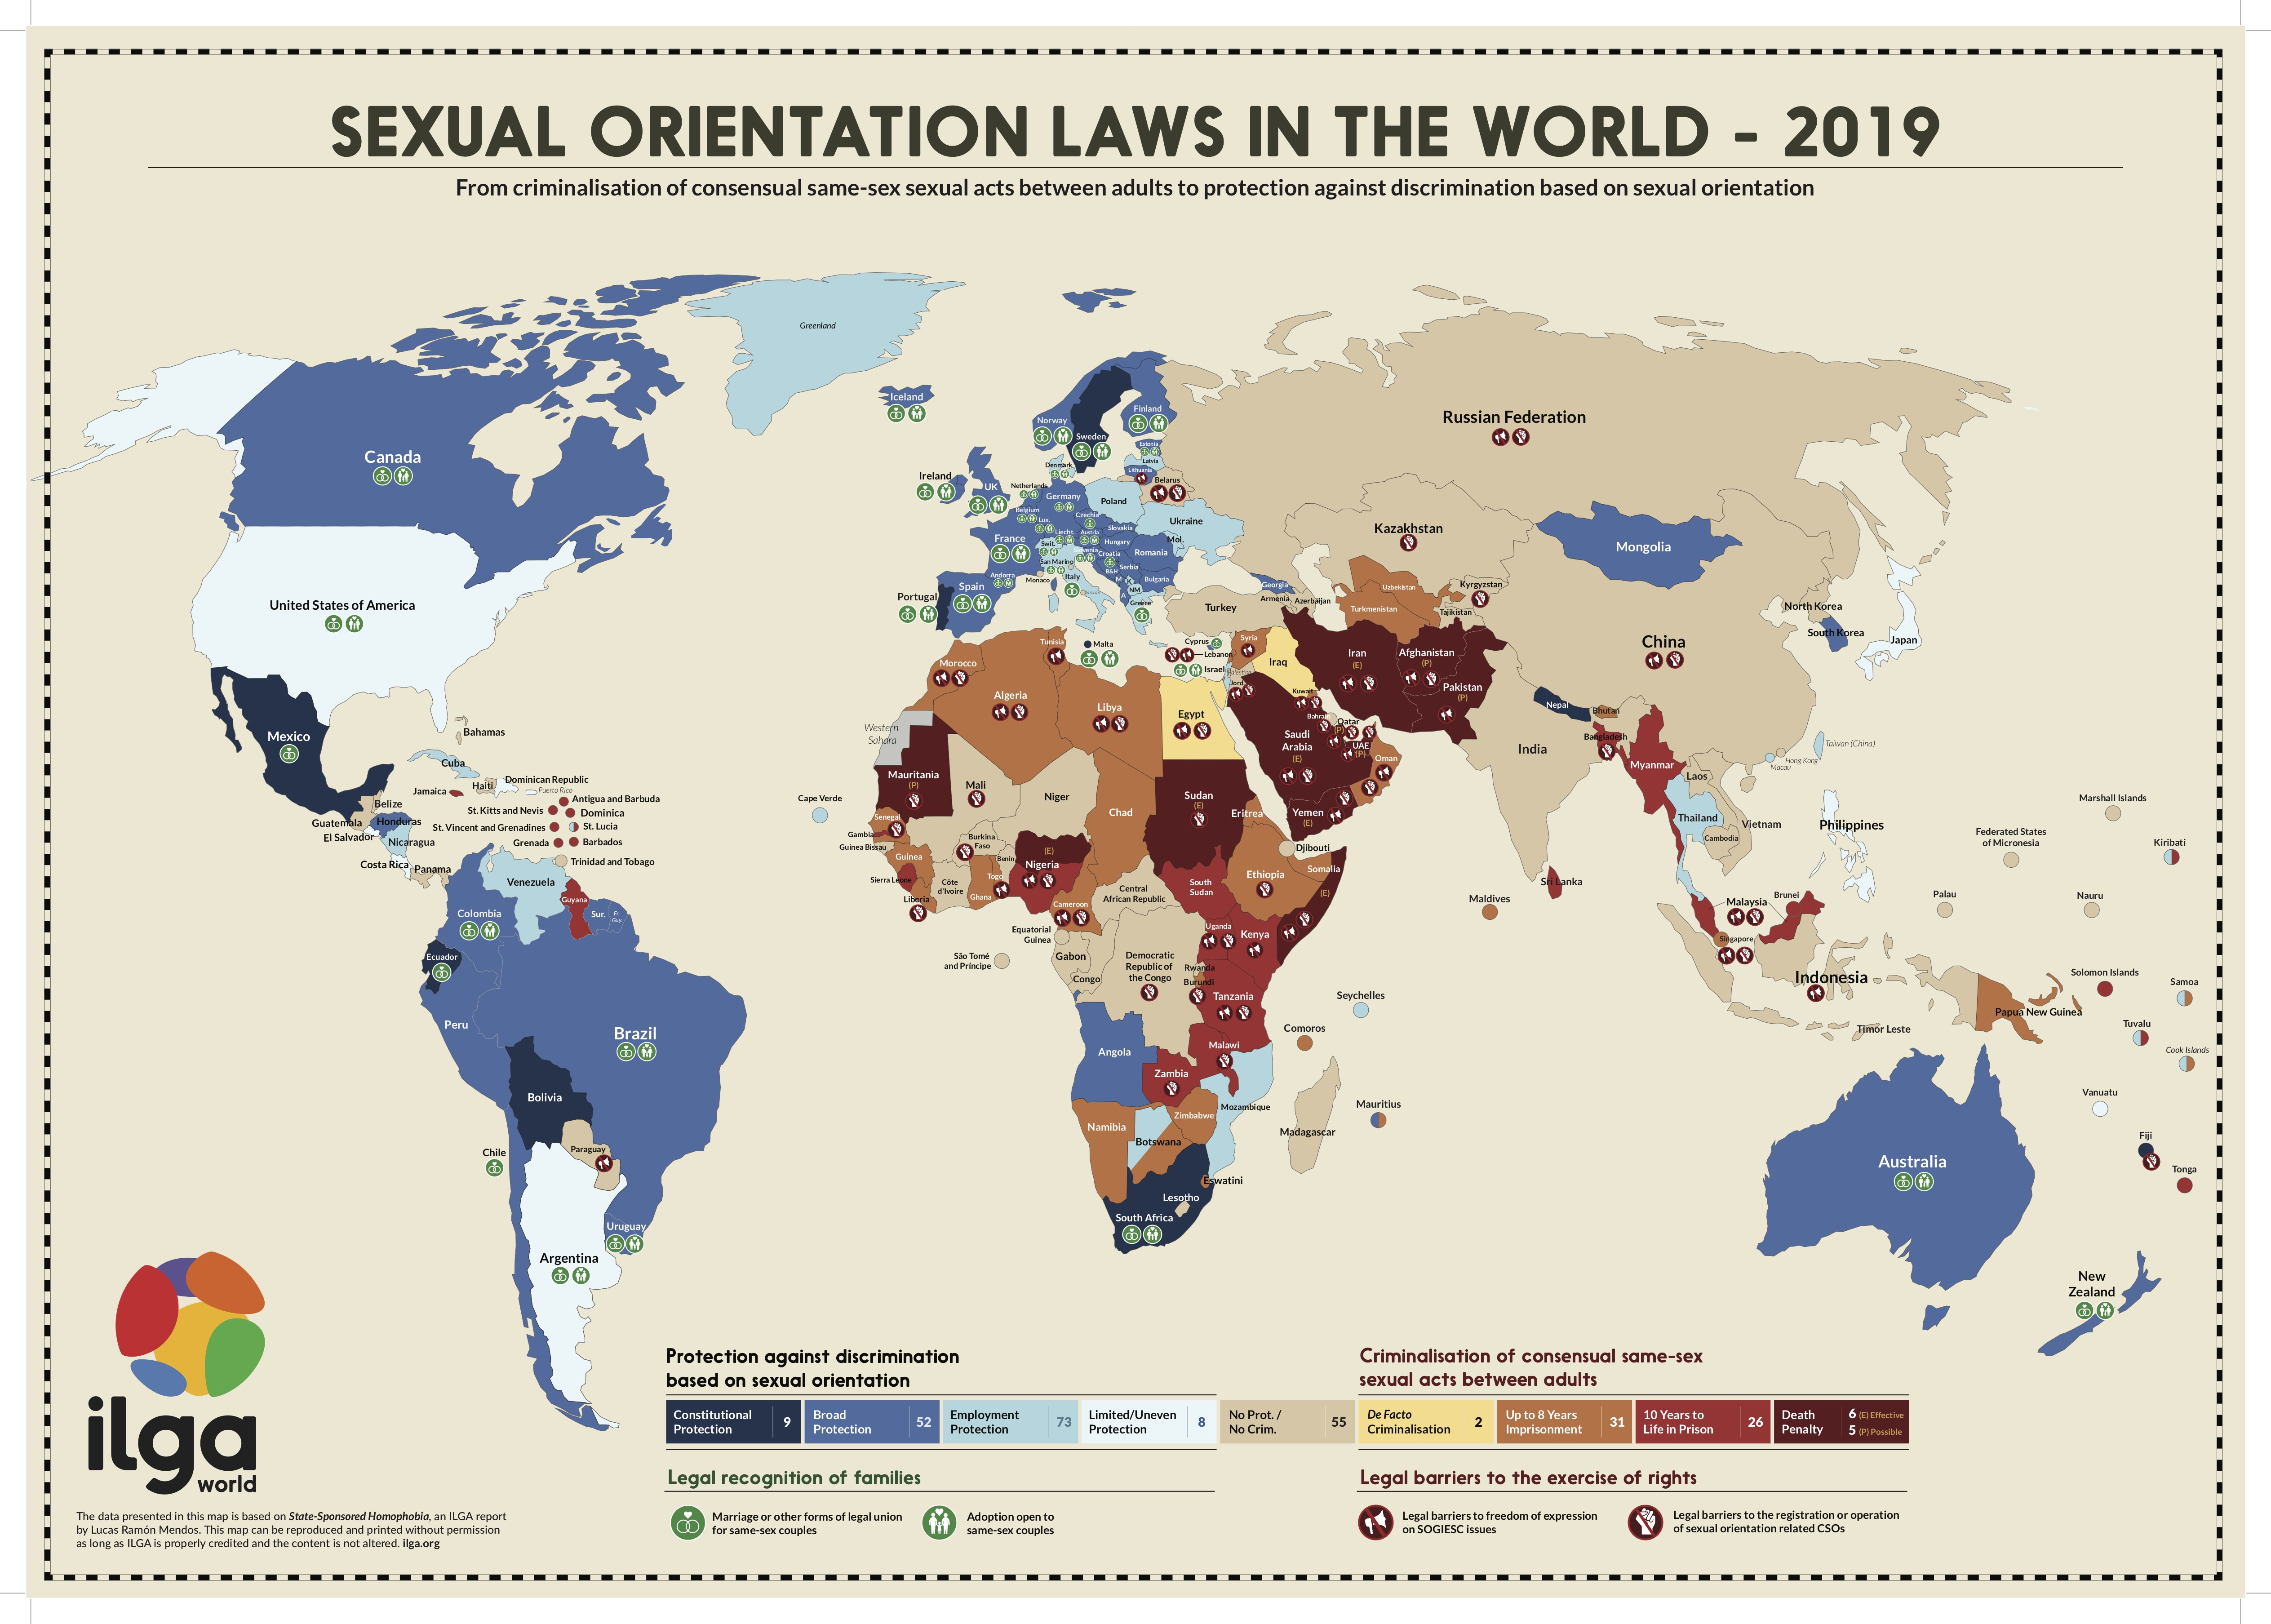 ILGA map showing sexual orientation laws in the world